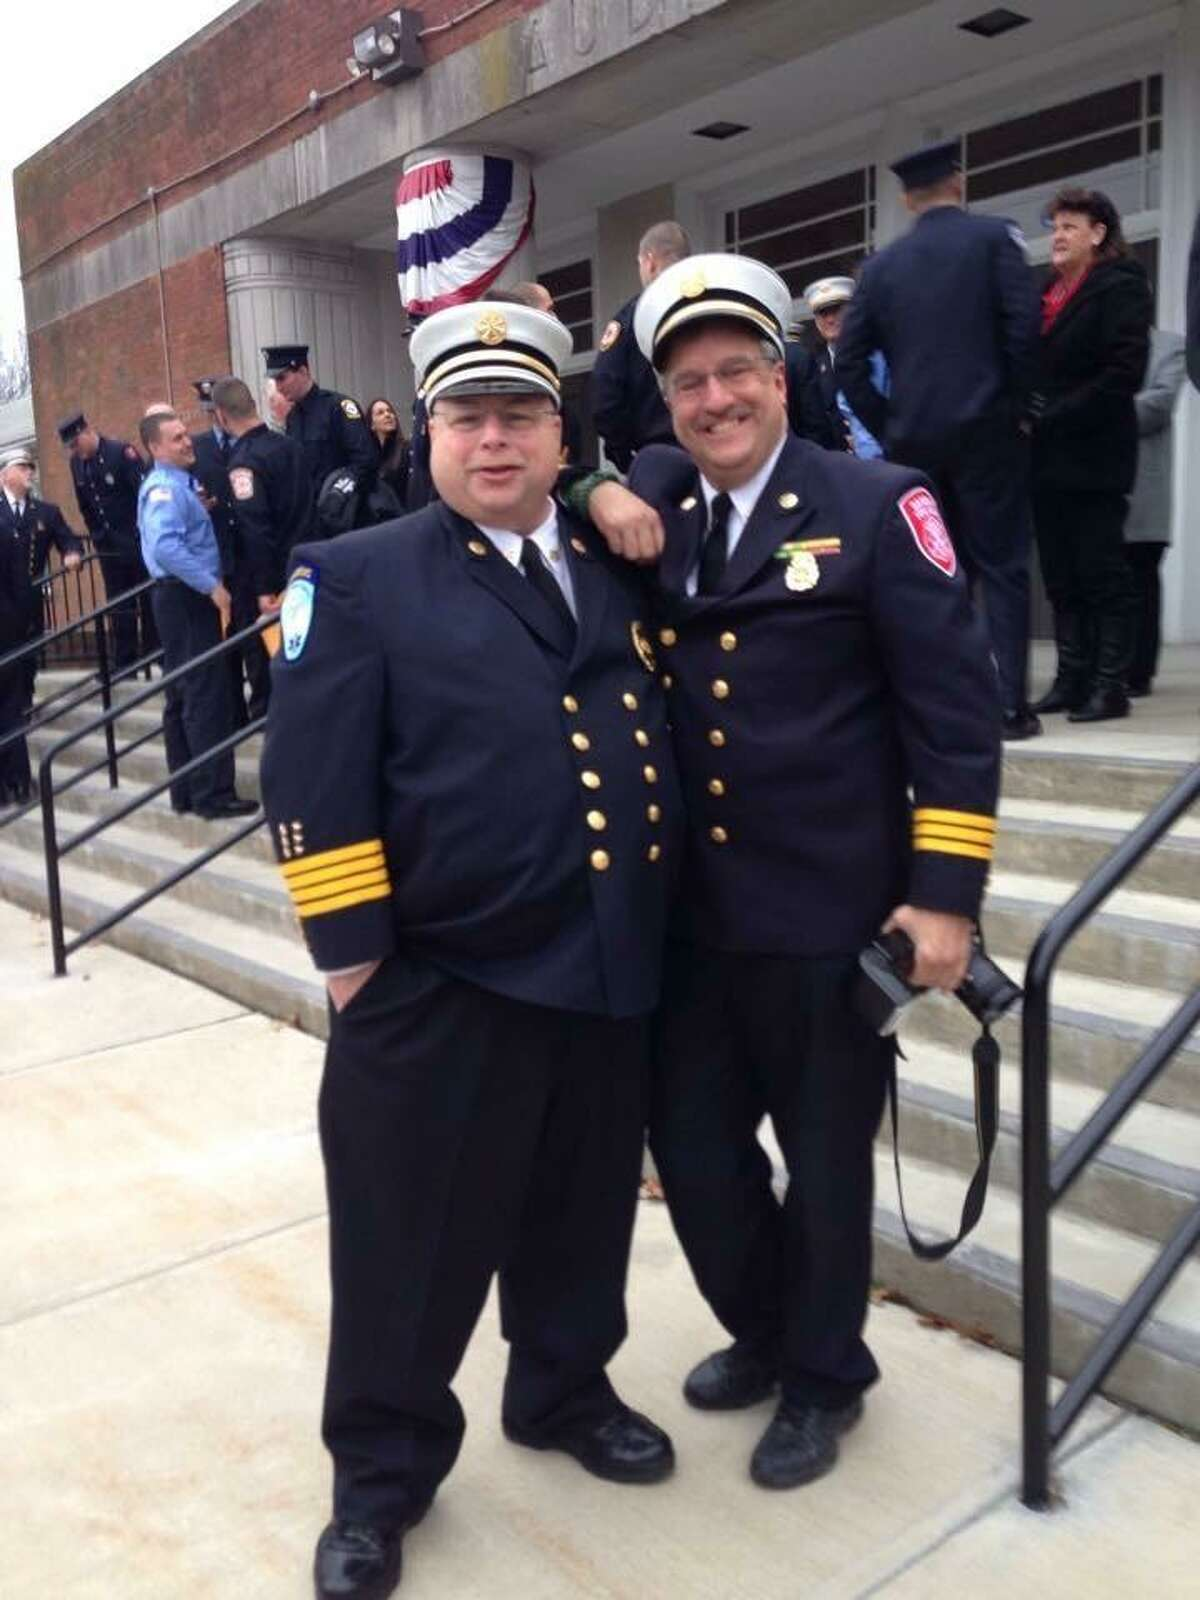 Newly promoted Chief Jerry Myers (left) with Danbury Deputy Fire Chief Meehan.